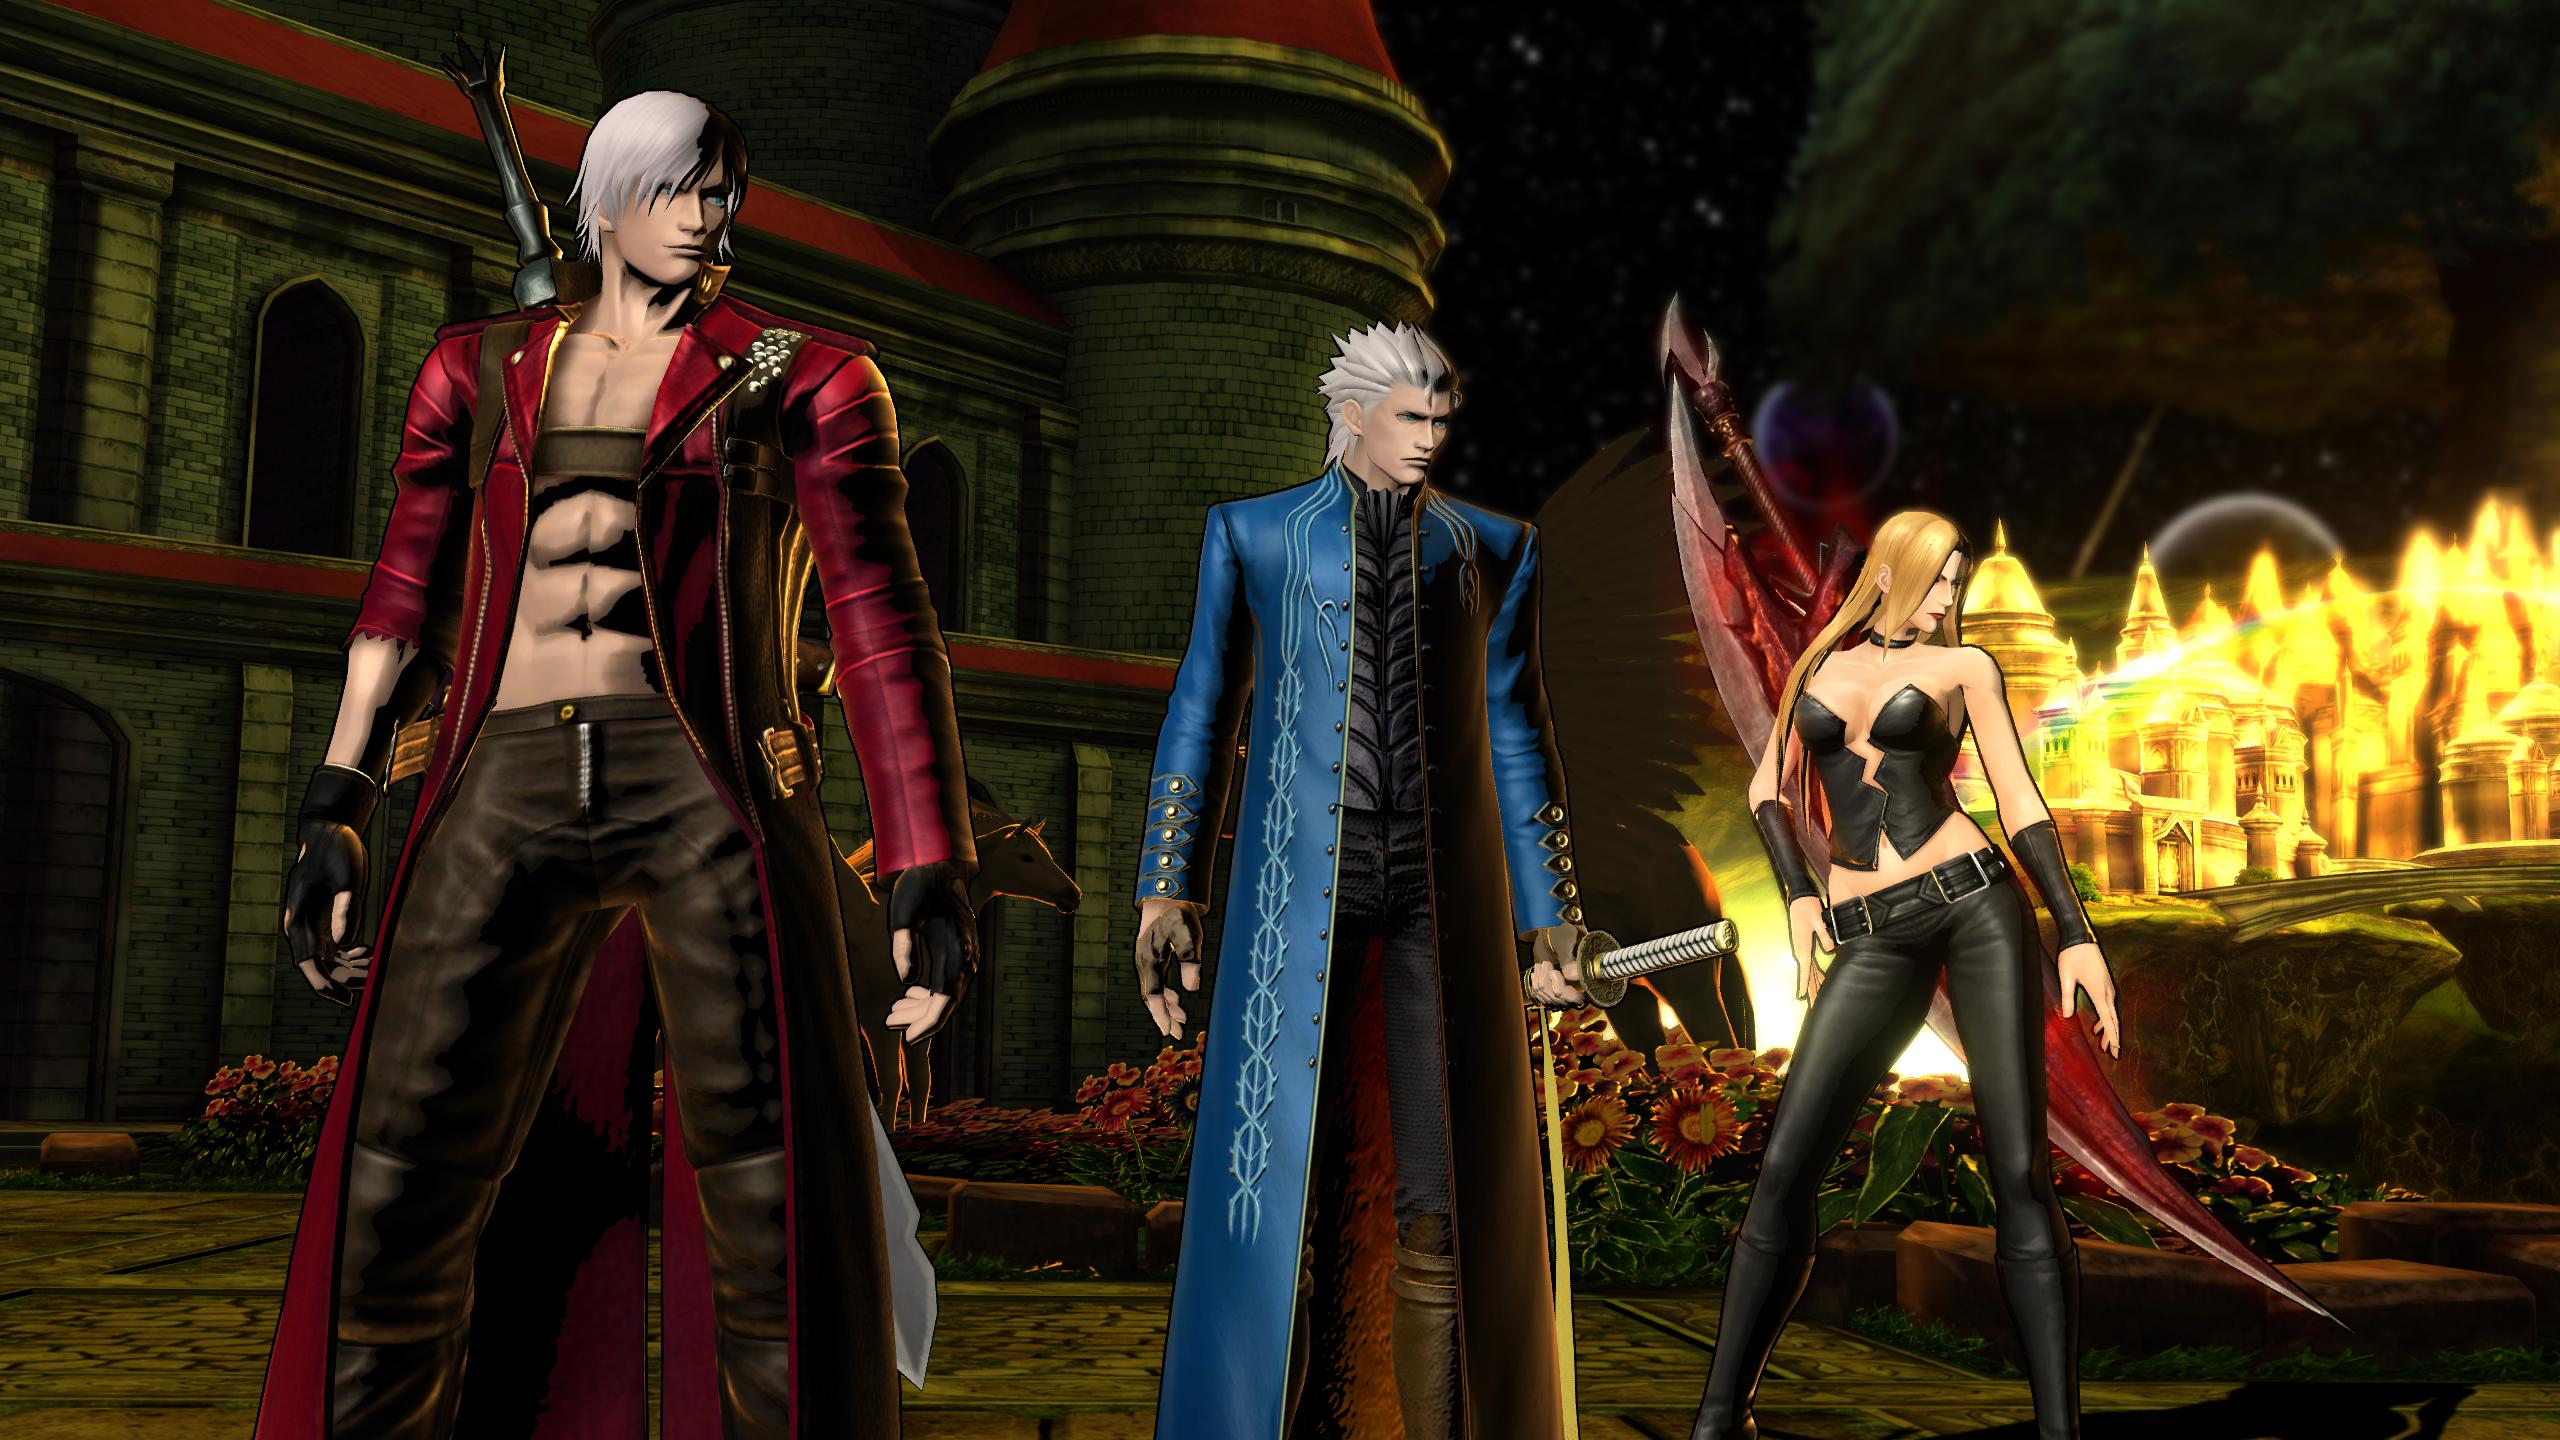 Vergil dans Ultimate Marvel vs. Capcom 3 6151118886_a5a0ff1614_o